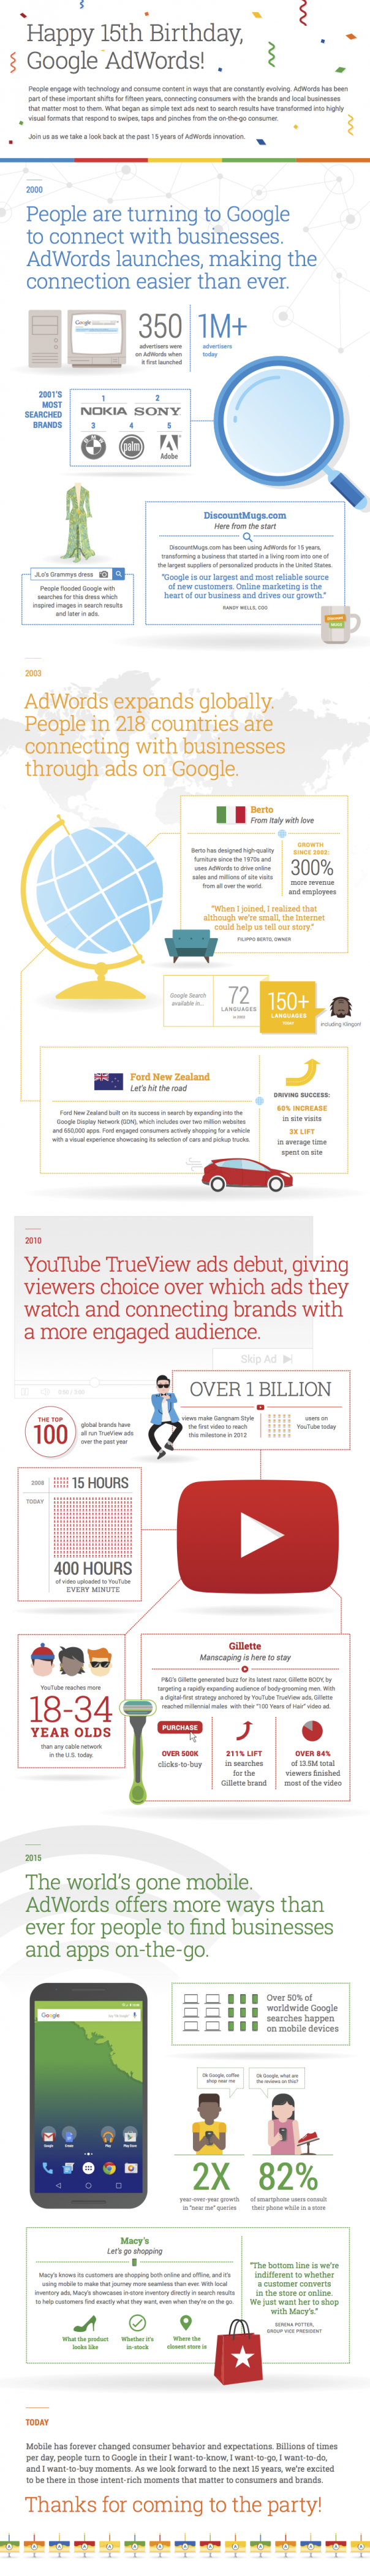 google-adwords-15-ans-infographie